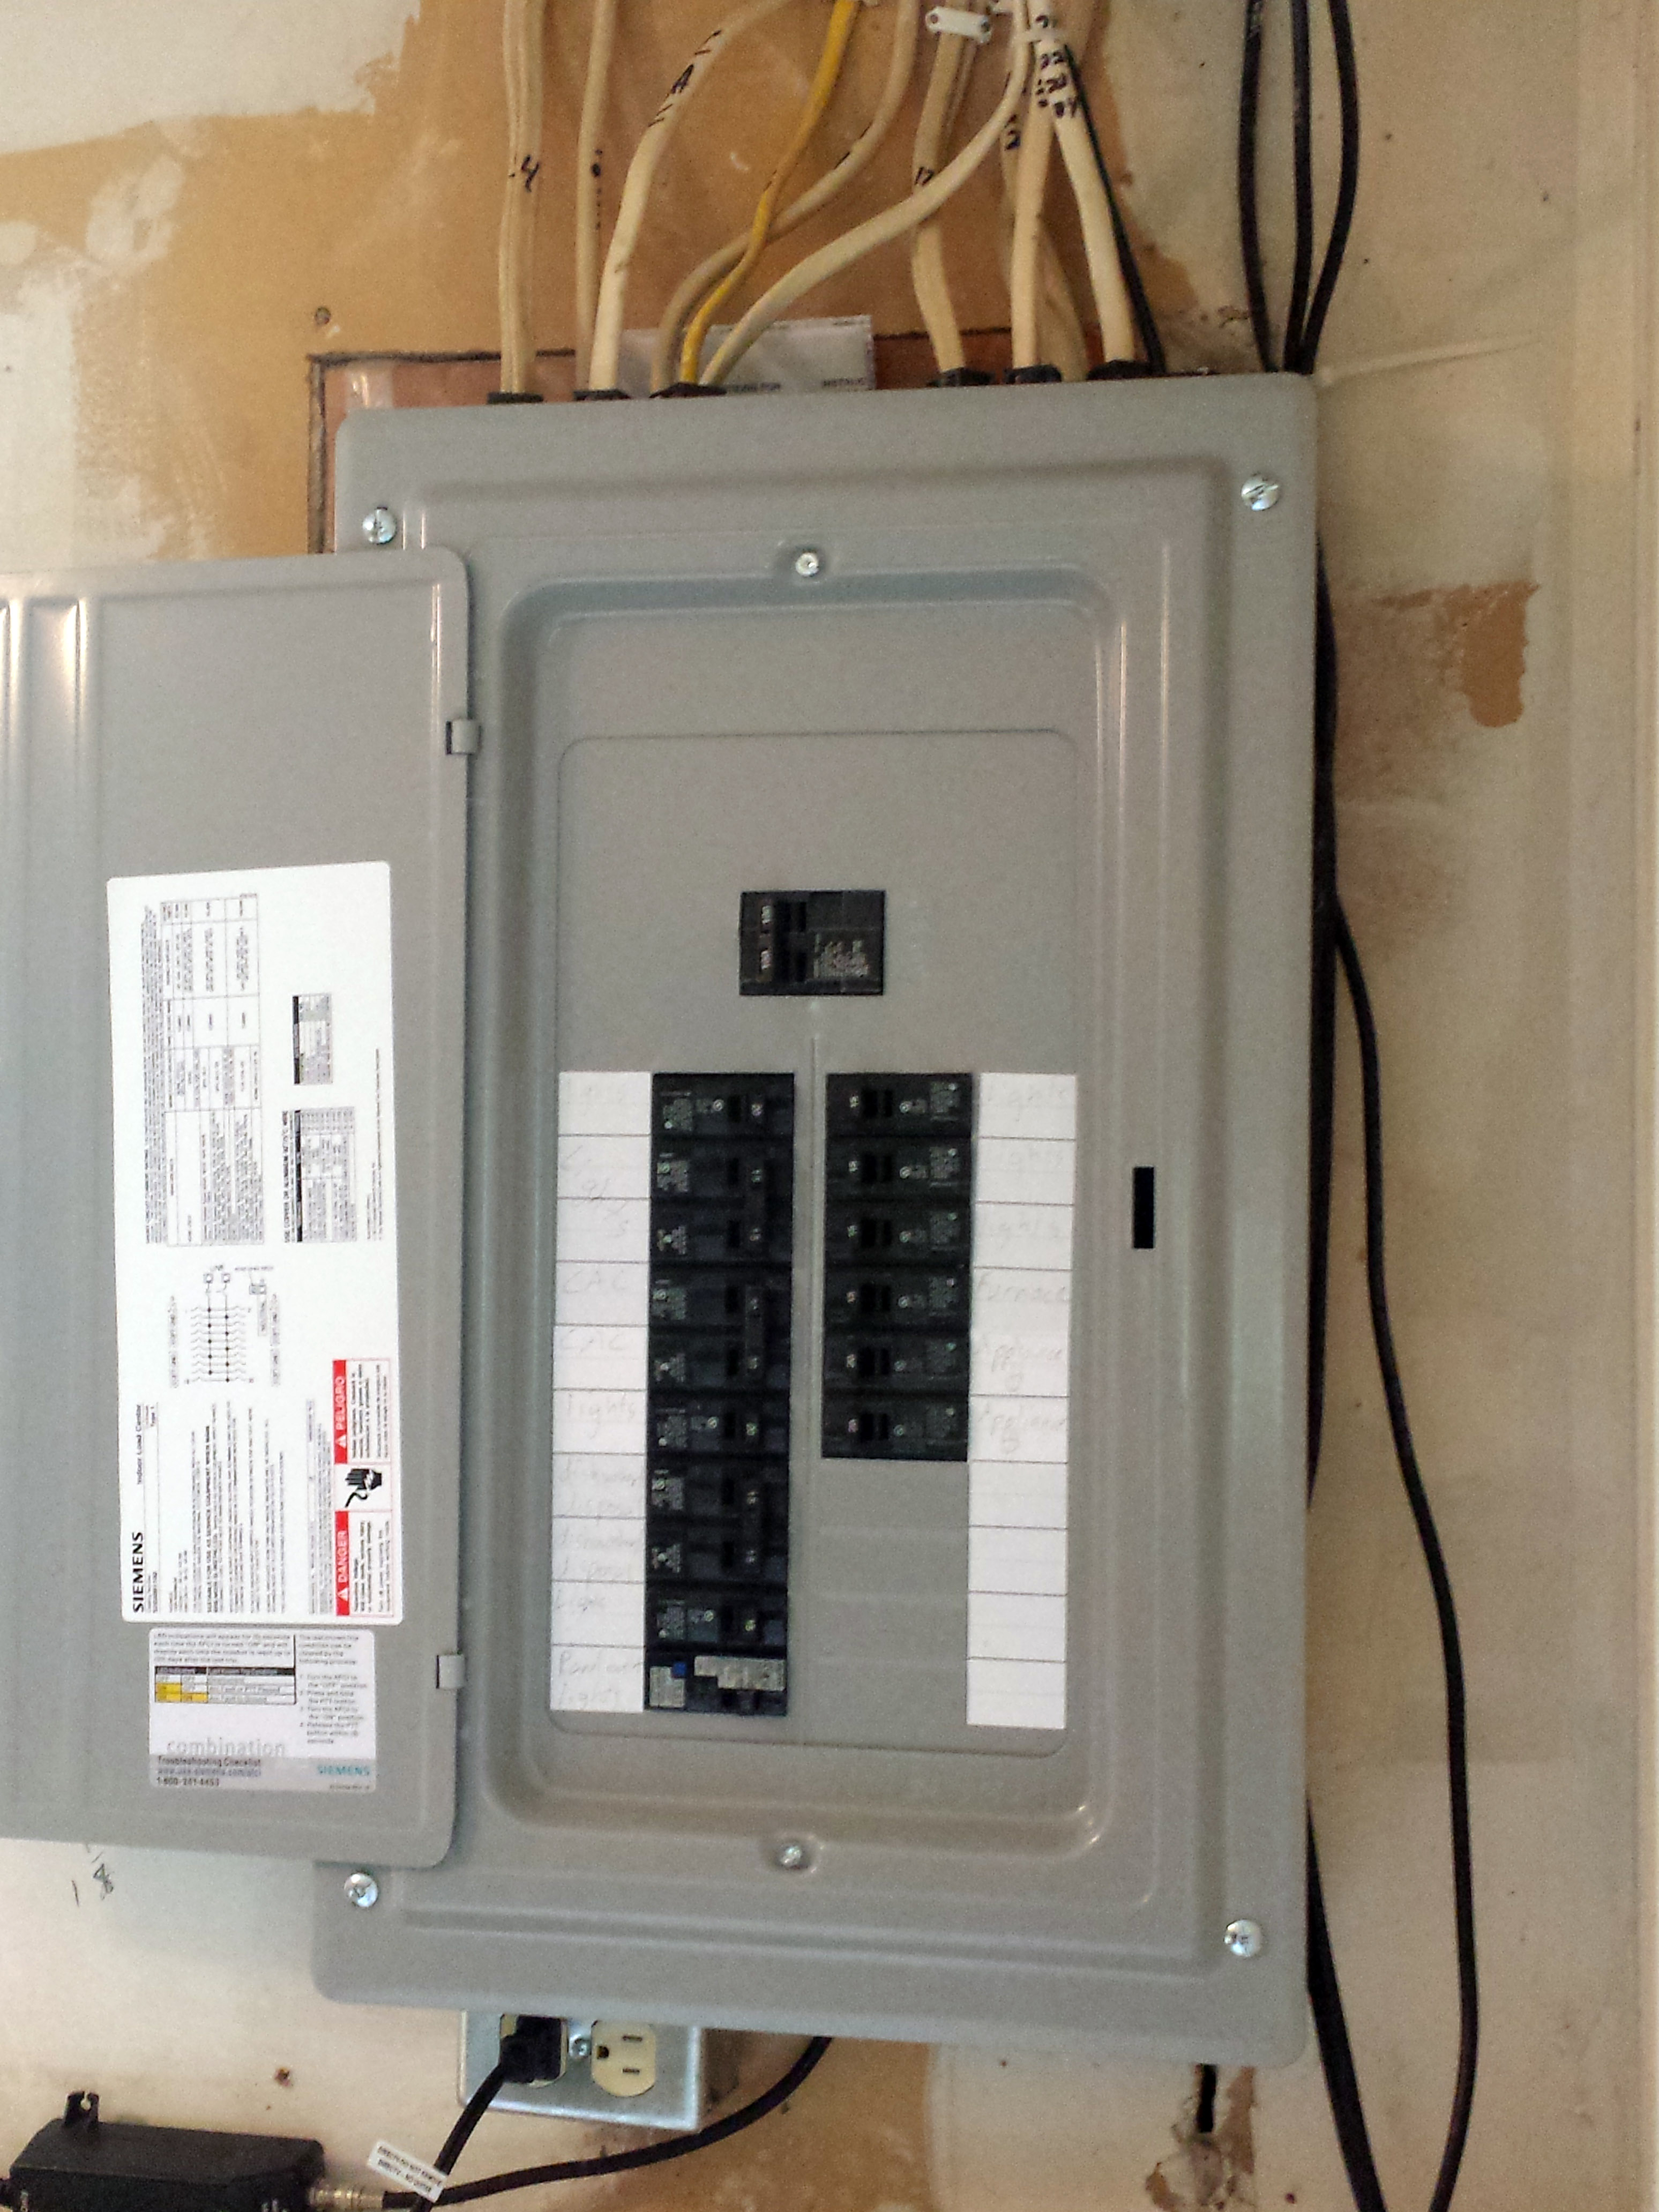 Regaling Coon Rapids Replace Fuse Fpe Breakers Total Electric How To Replace A Breaker Panel Box How To Replace A Breaker Fuse Amp Panel Replacing An Fpe houzz 01 How To Replace A Breaker